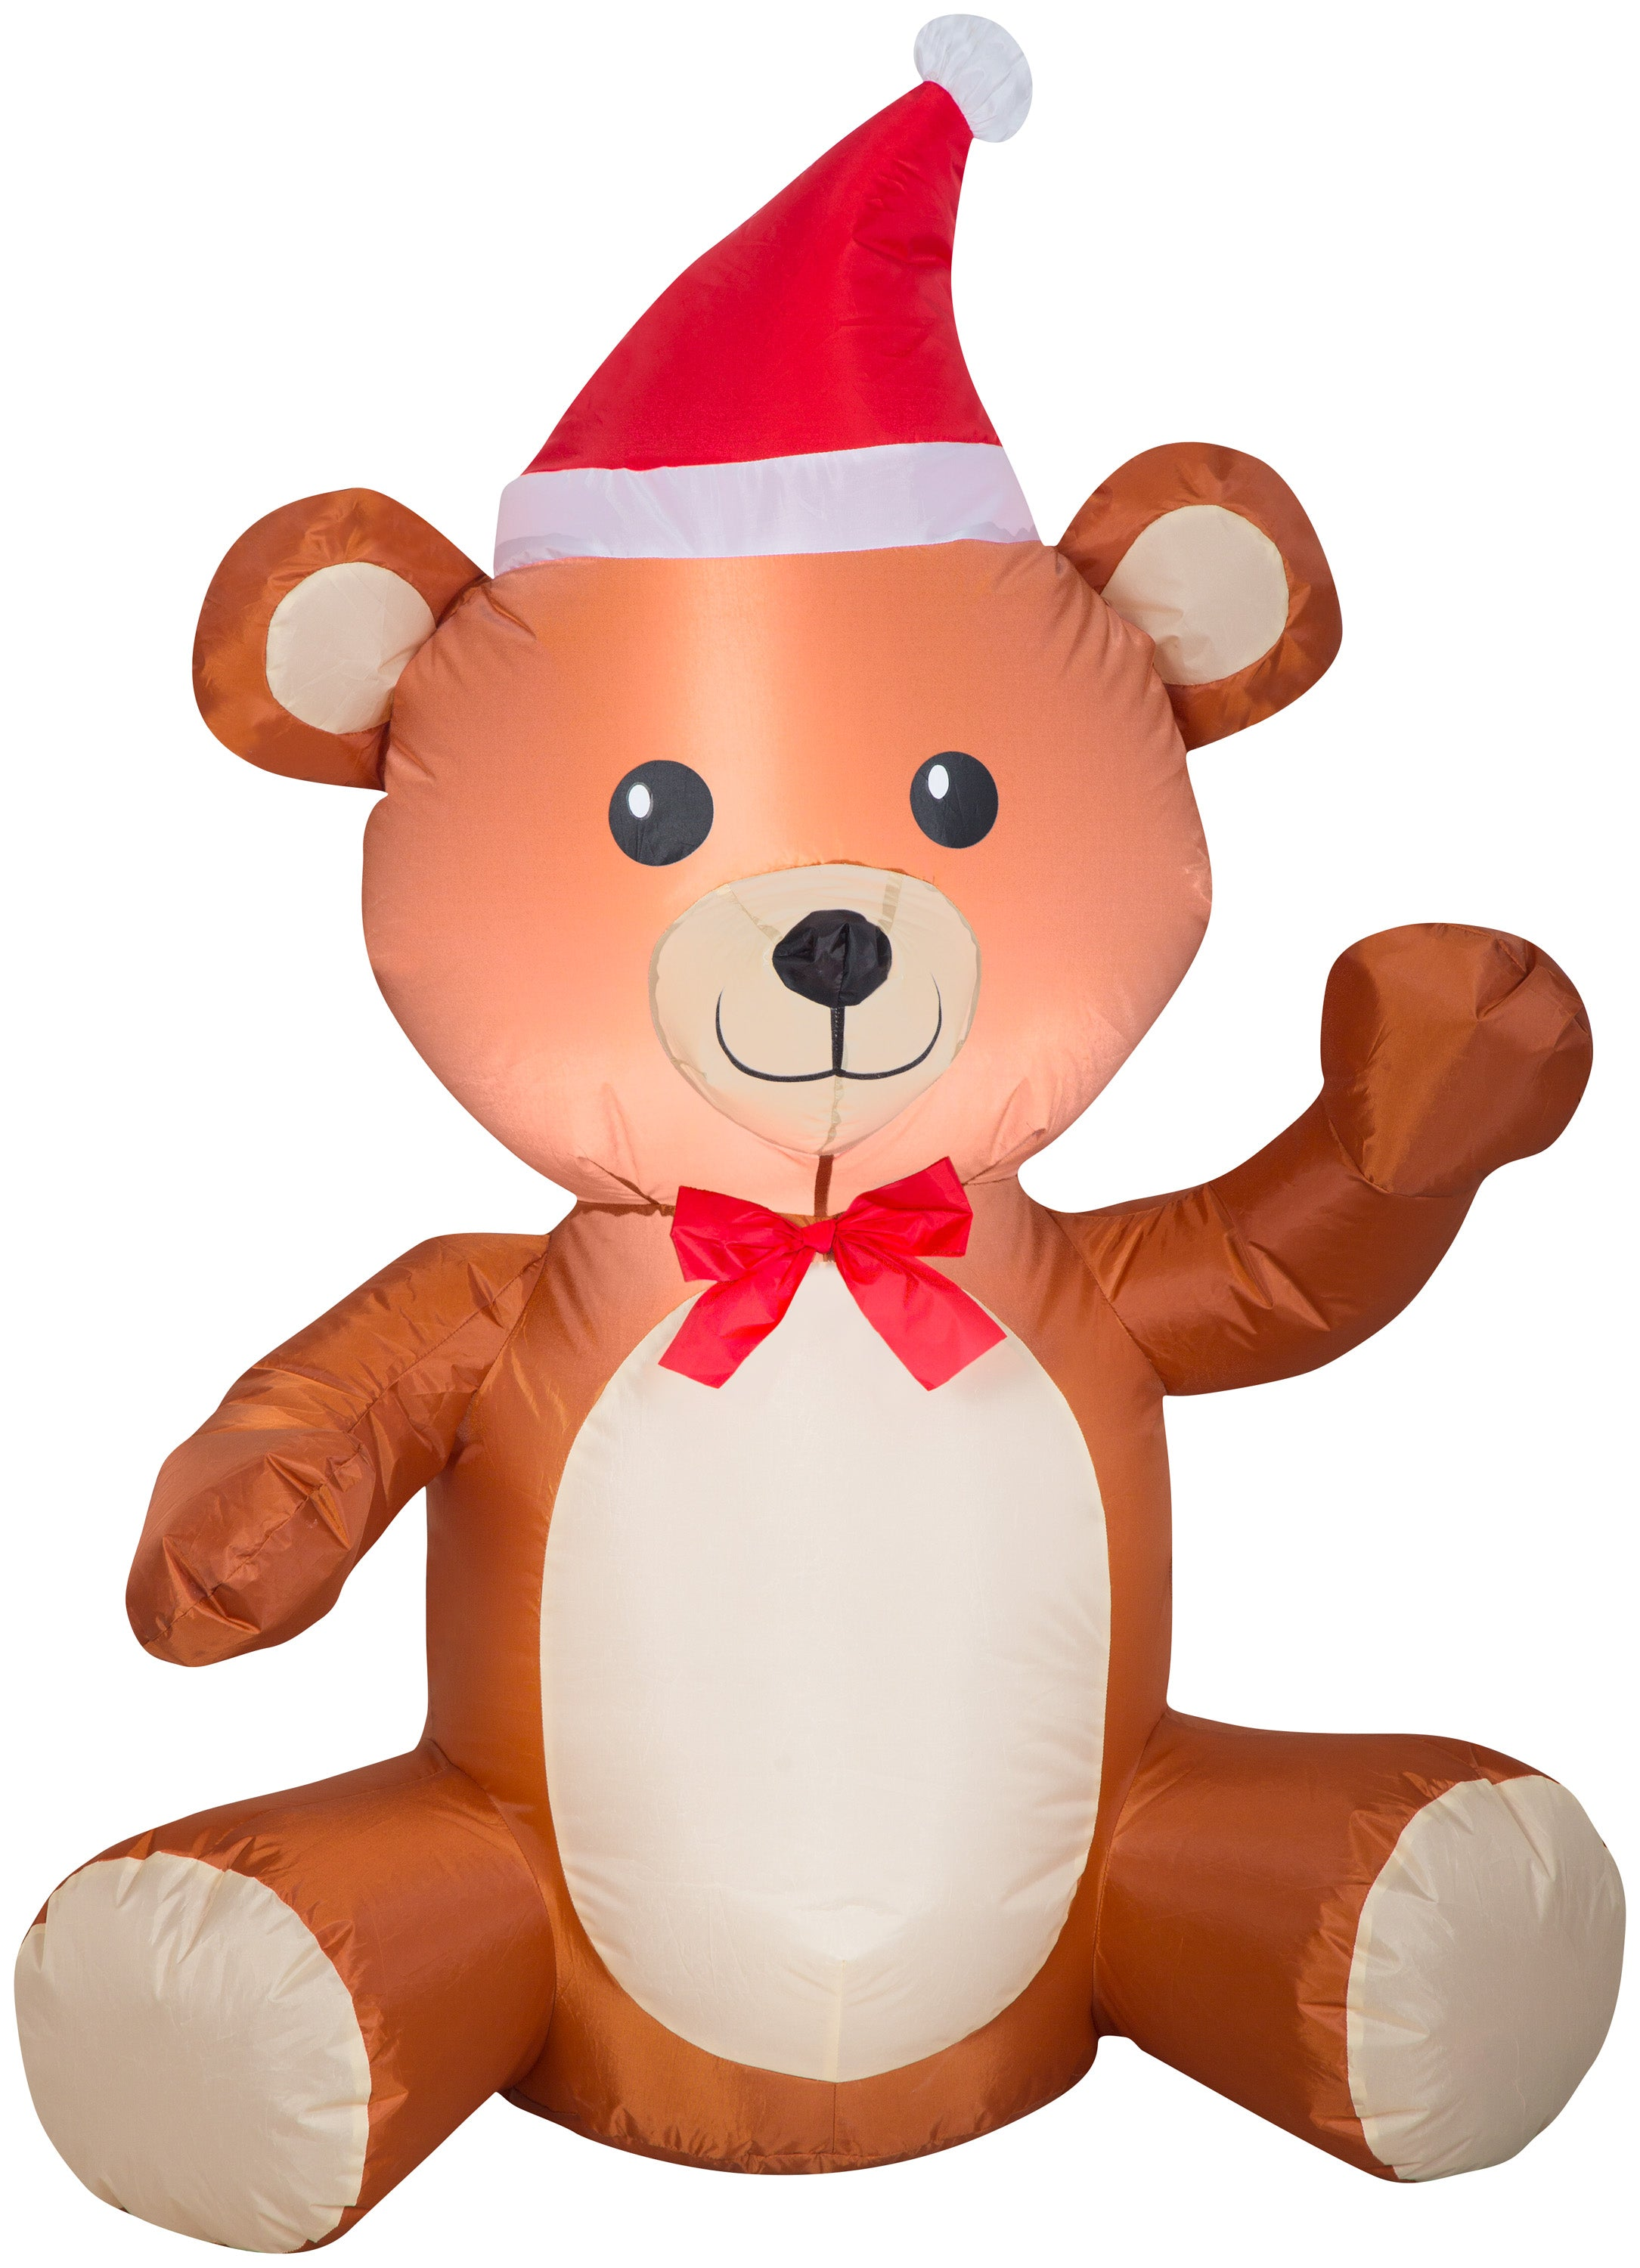 Gemmy 3.5' Airblown Inflatable Christmas Teddy Bear